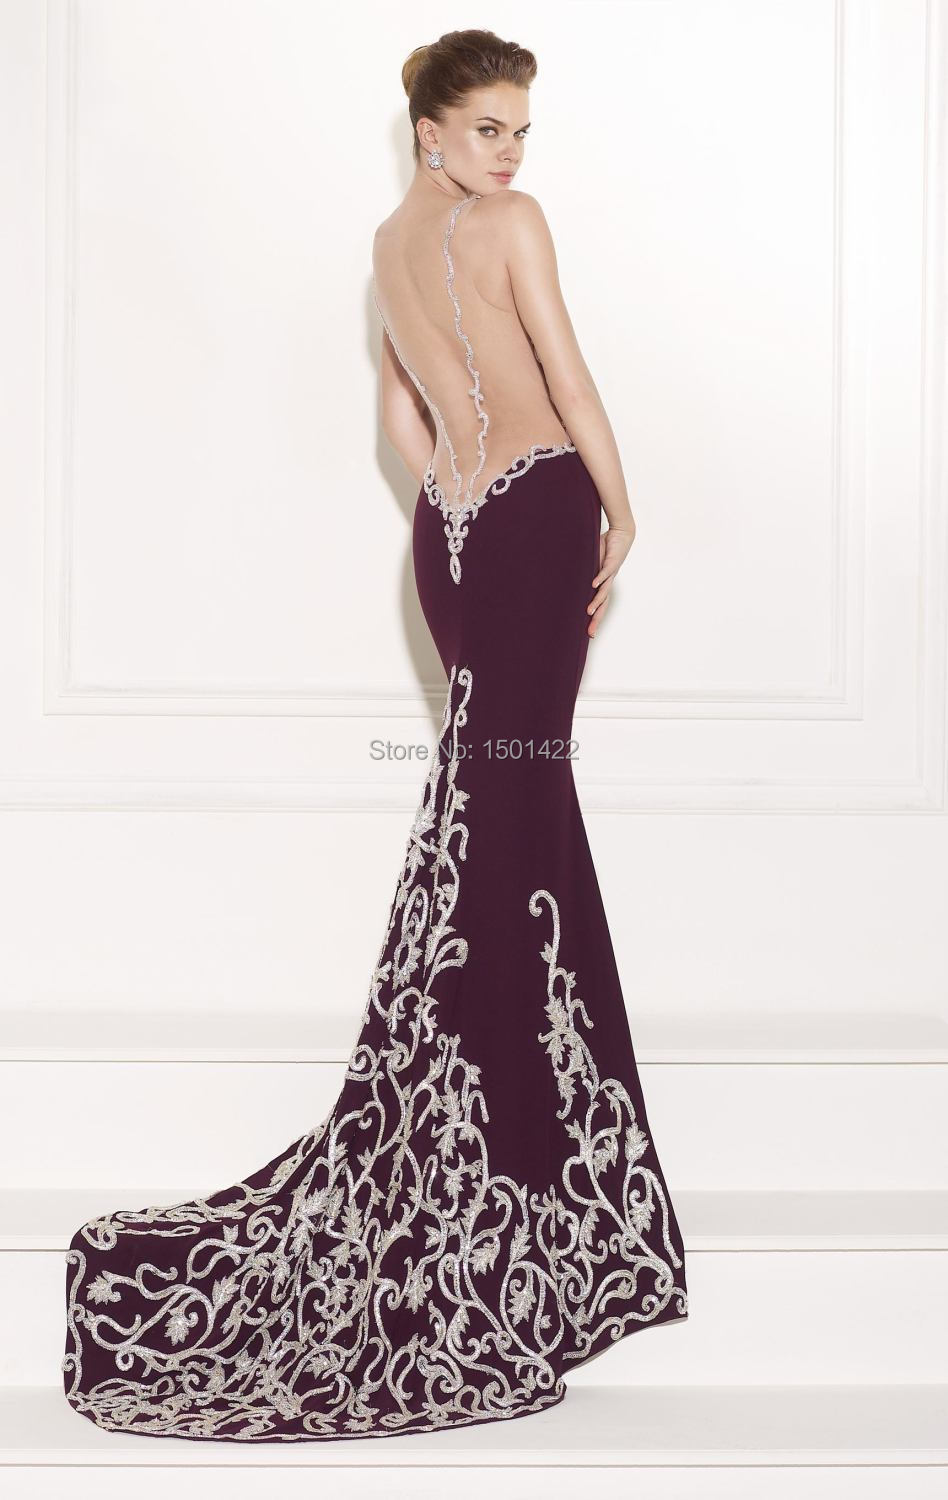 Backless Gowns Evening Gowns | Dress images